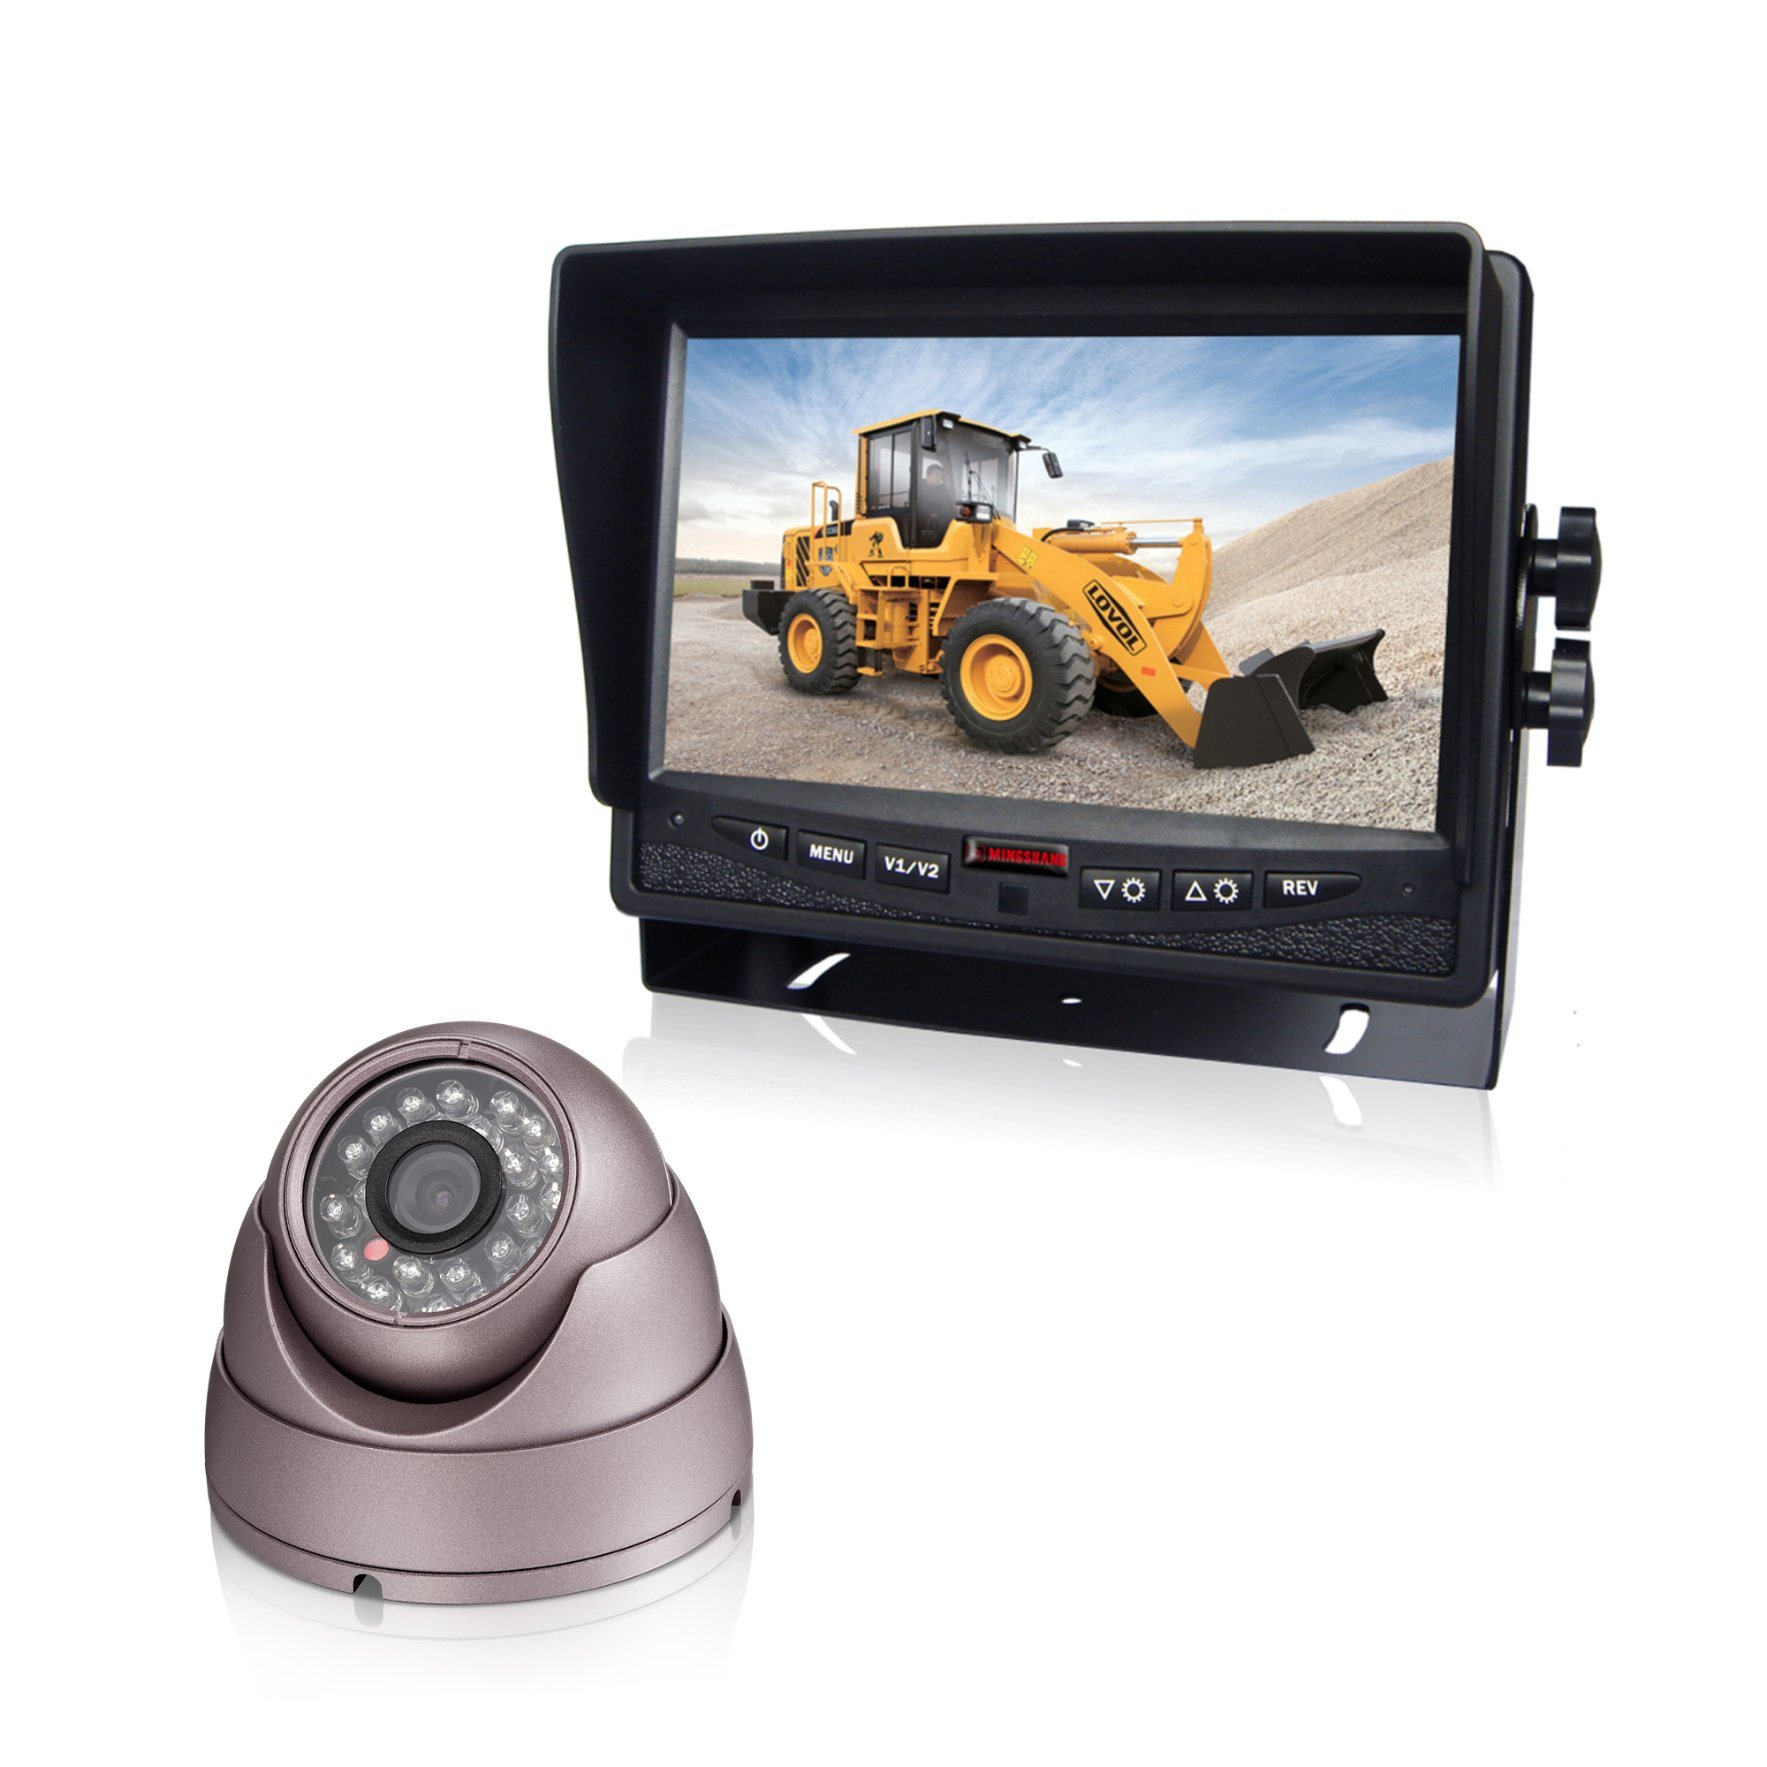 7-Inch HD Reversing Camera HD Monitor for Trucks, Buses, Tracters